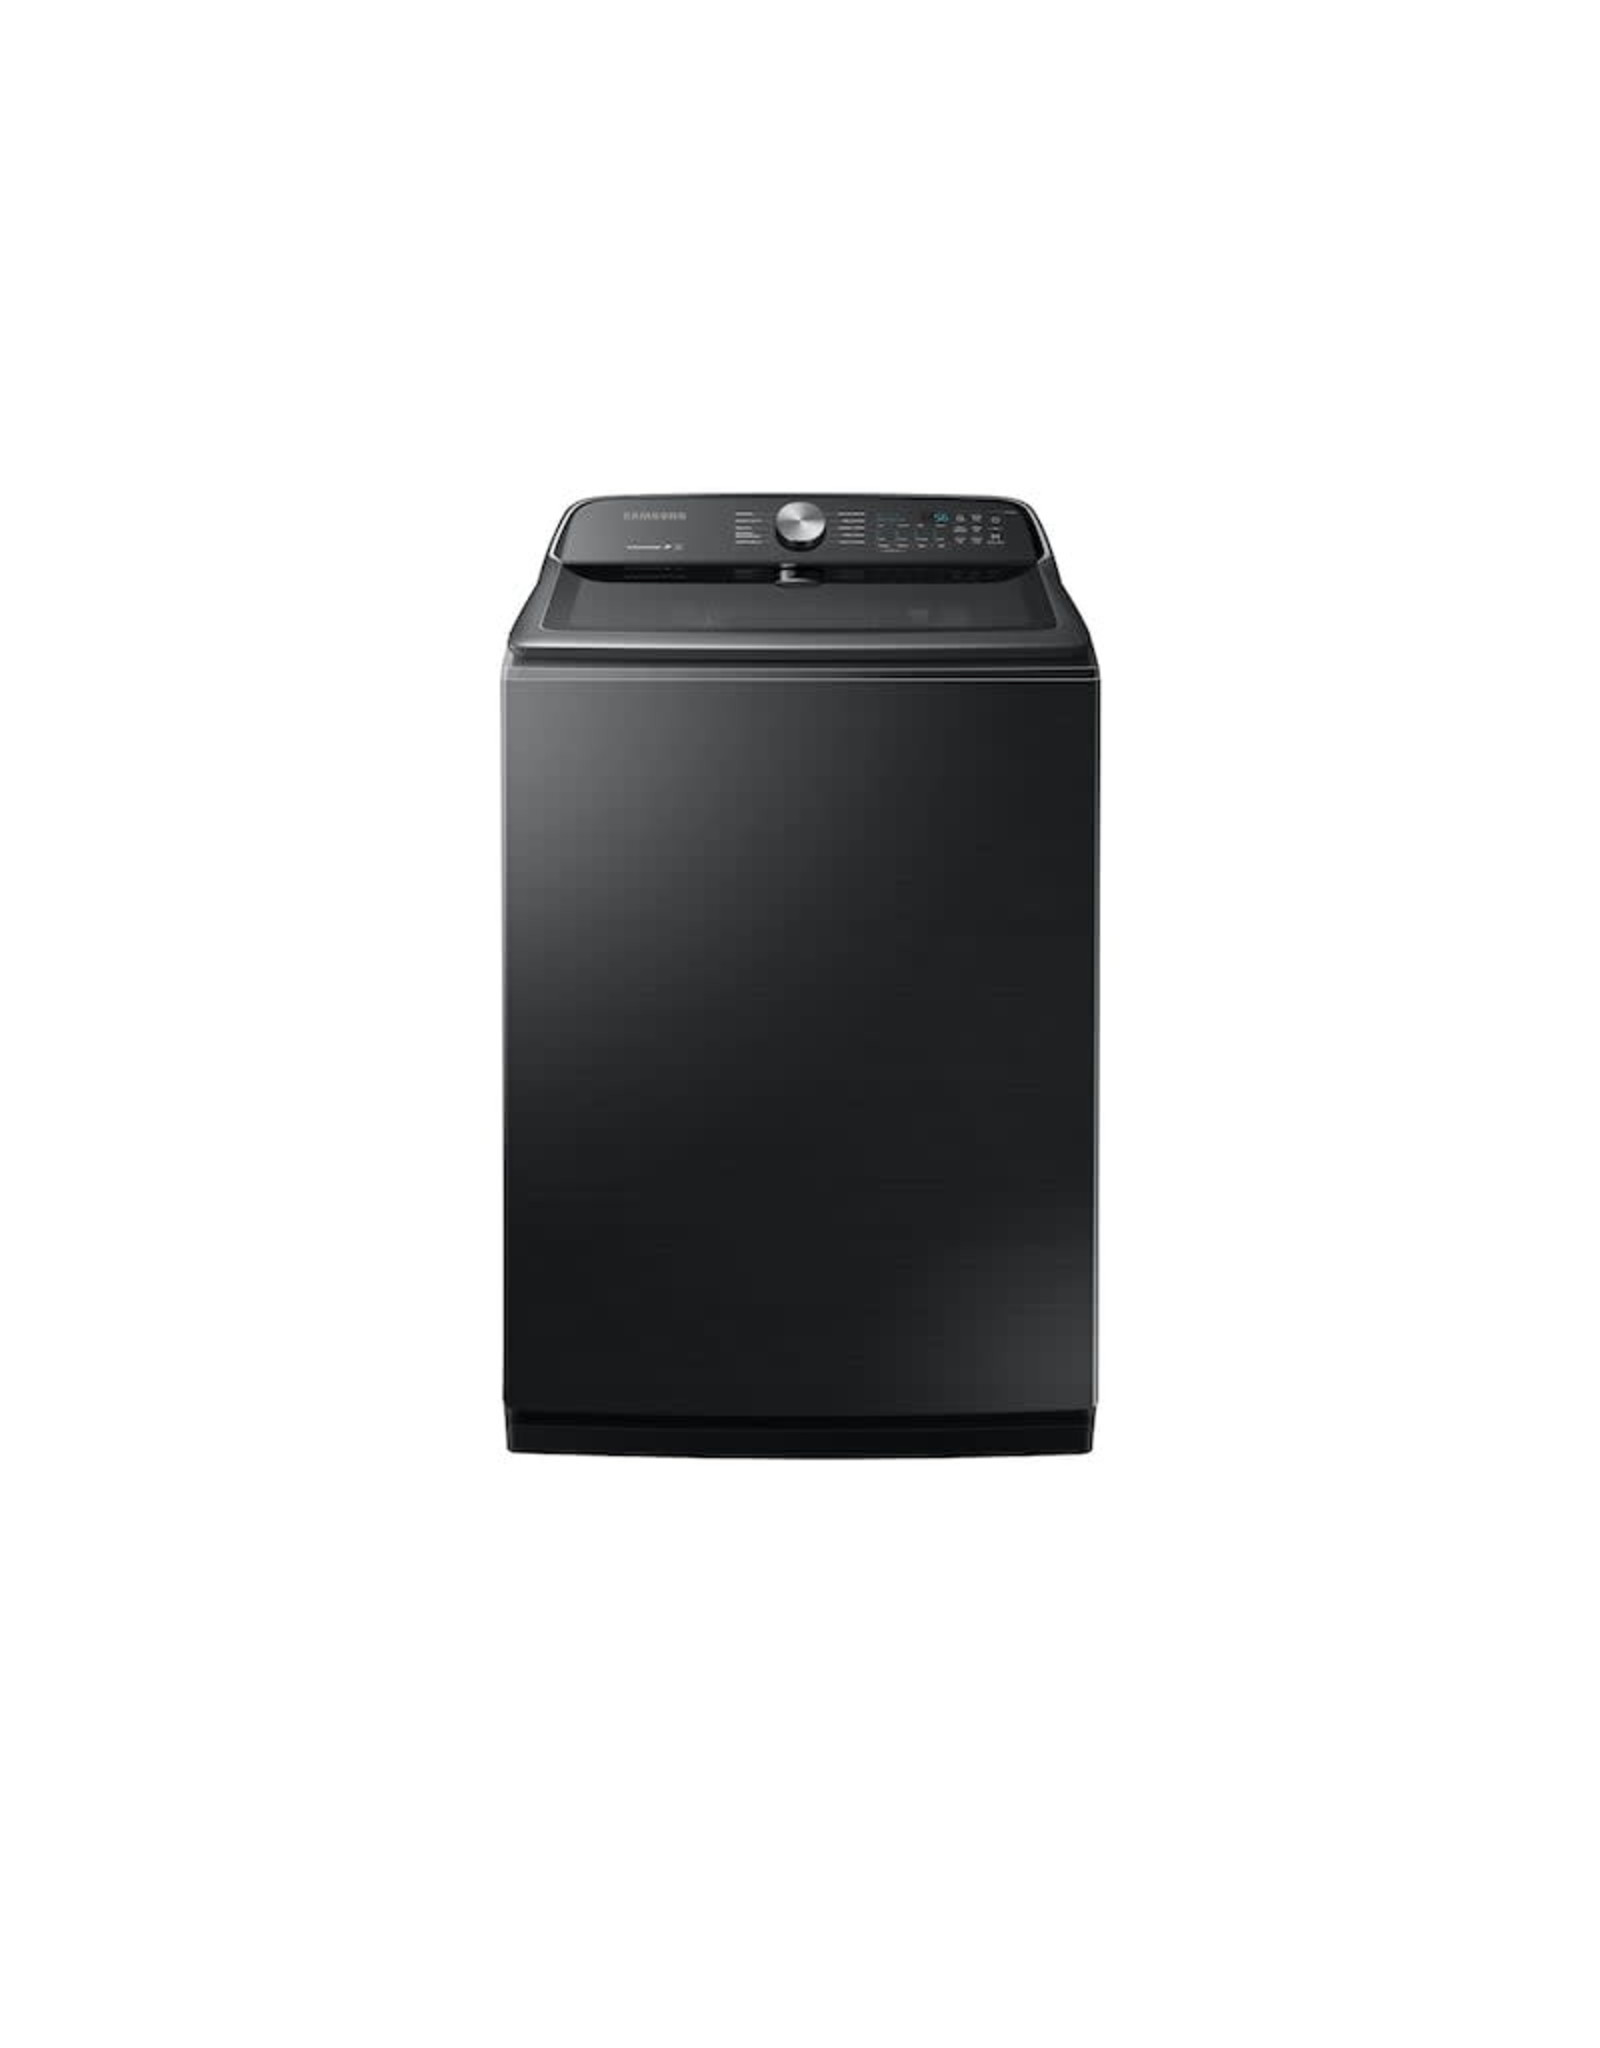 SAMSUNG Samsung 5.4 cu. ft. Fingerprint Resistant Black Stainless Top Load Washing Machine with Active WaterJet, ENERGY STAR